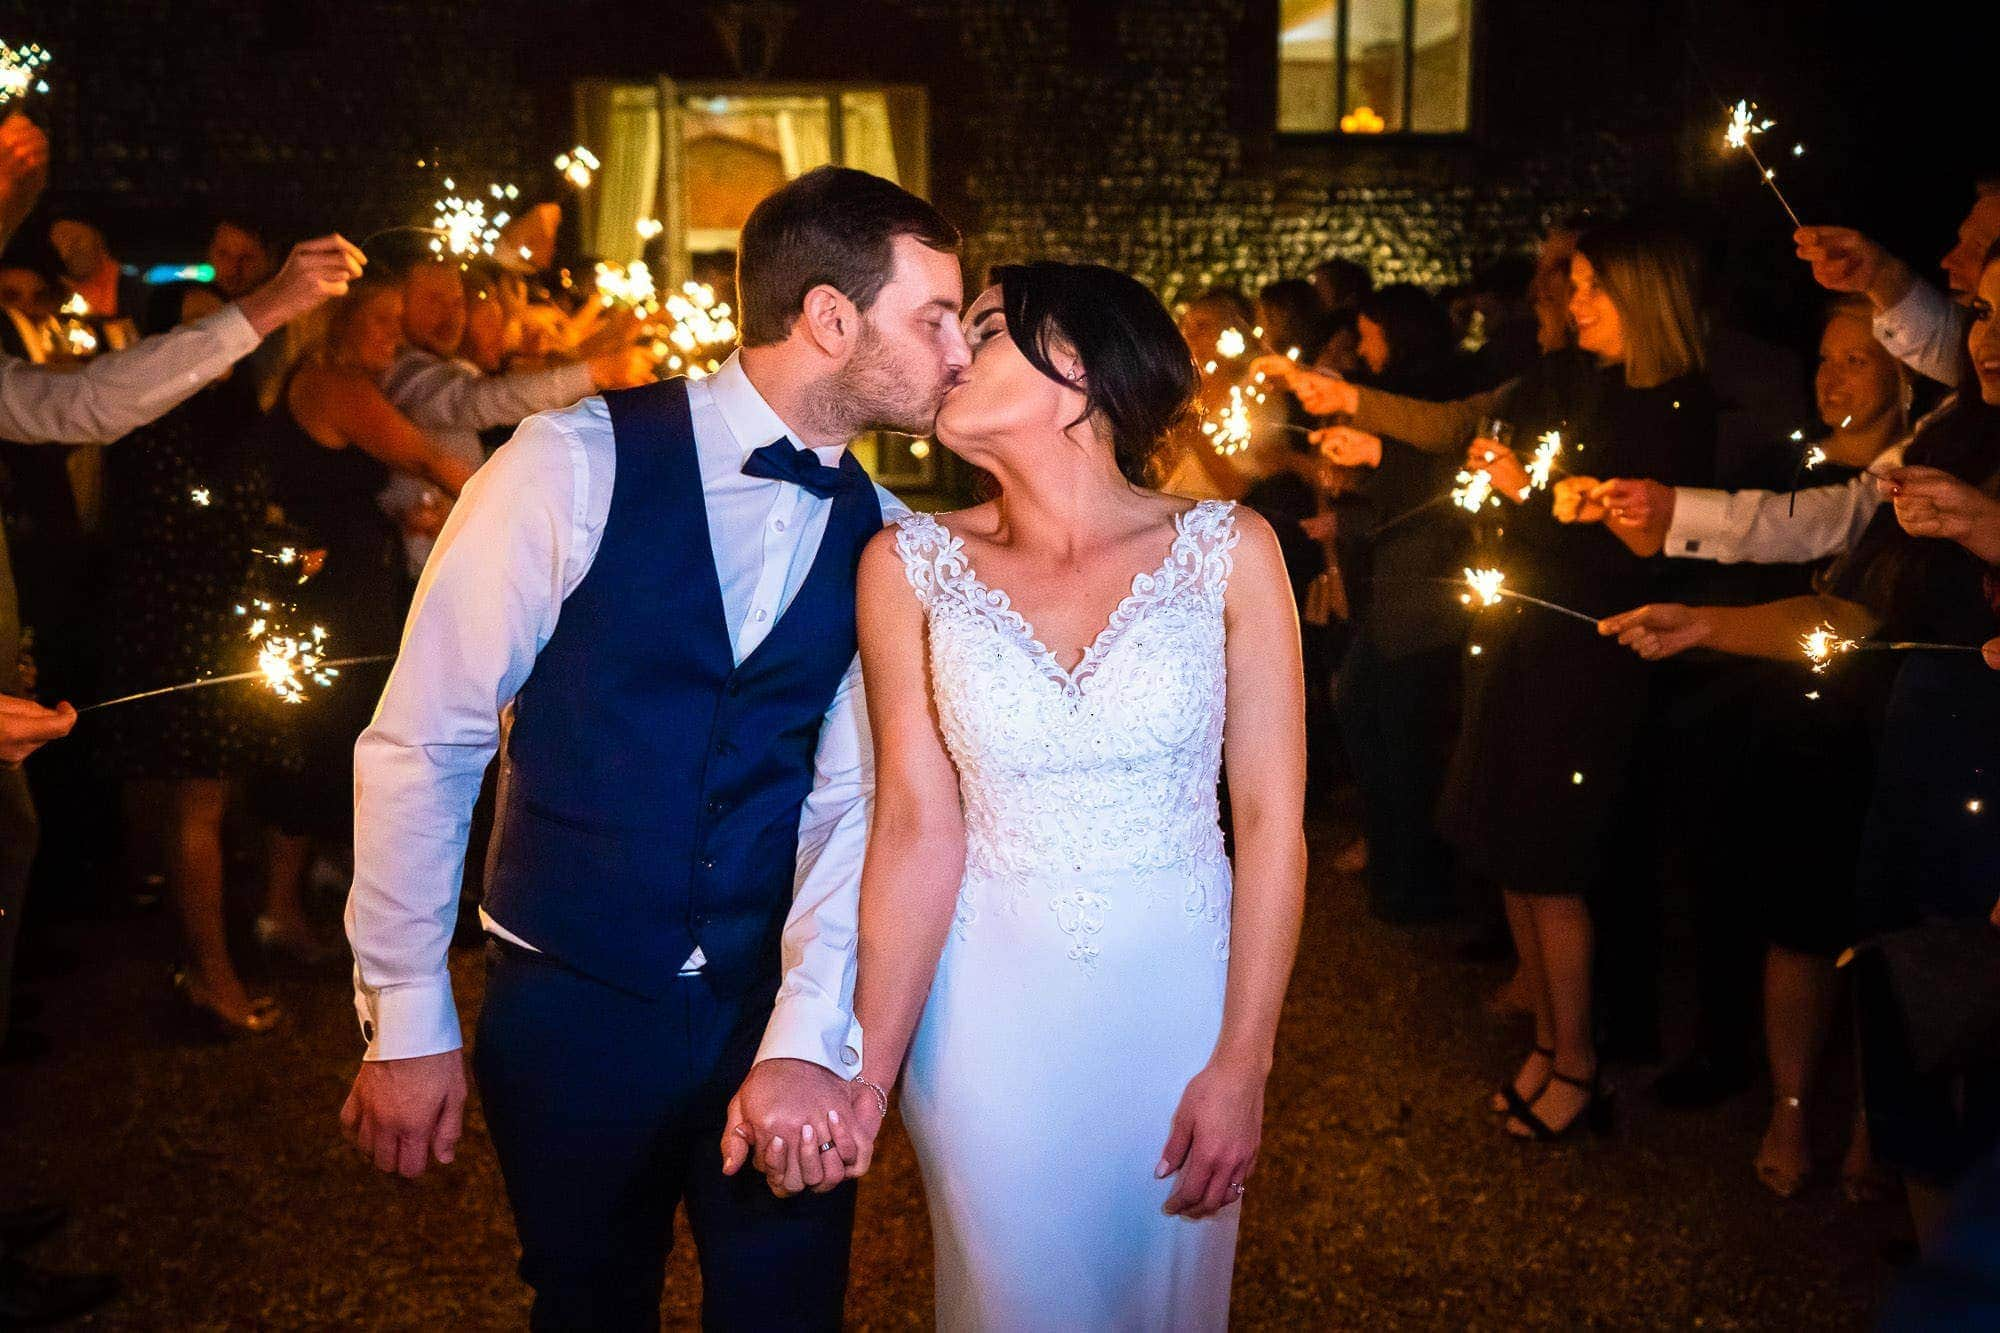 Couple Kissing with Guests holding Sparklers - Farbridge Wedding